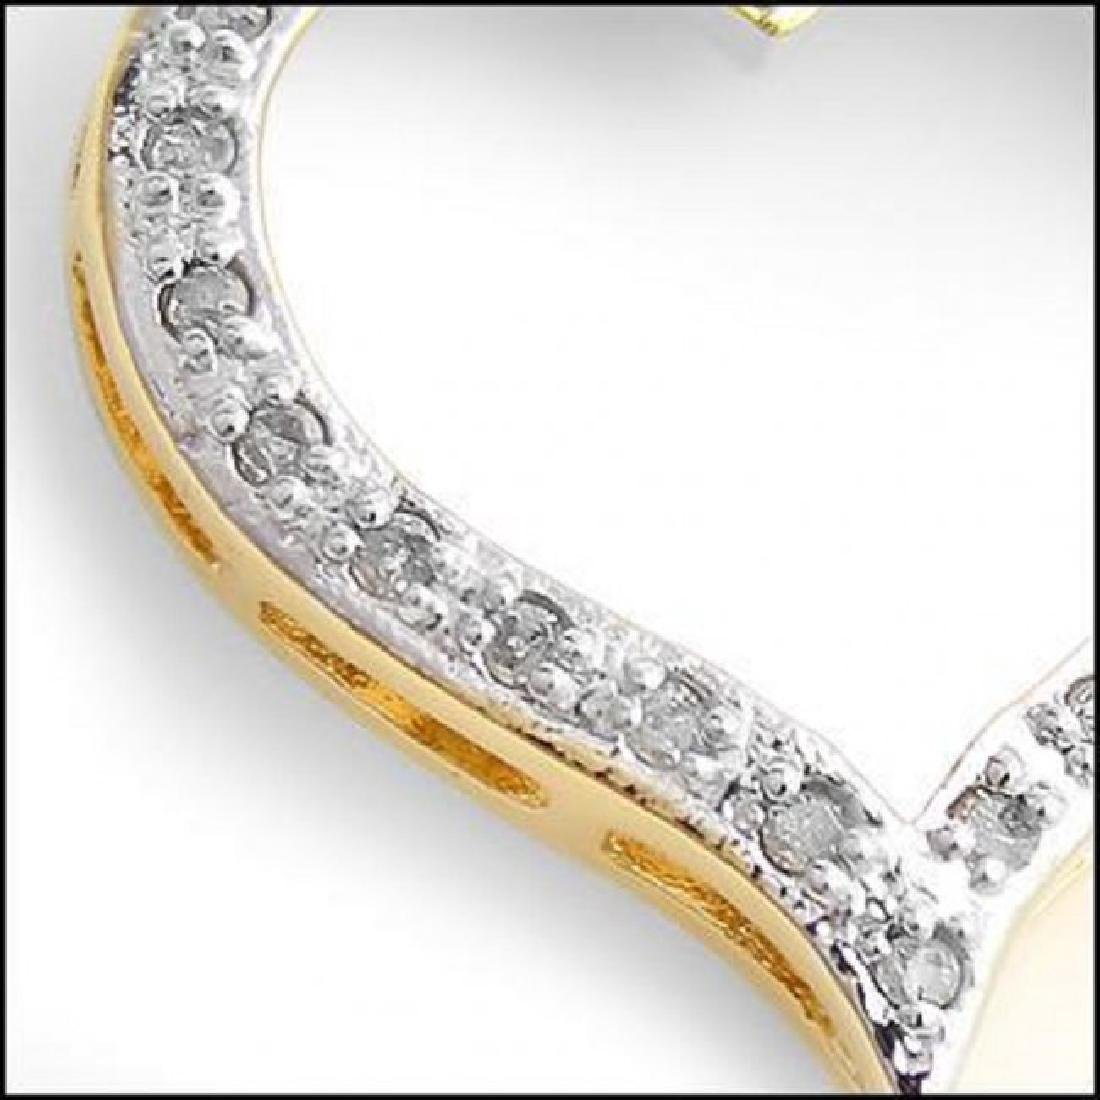 0.46 CT Diamond Heart Designer Necklace $775 - 2